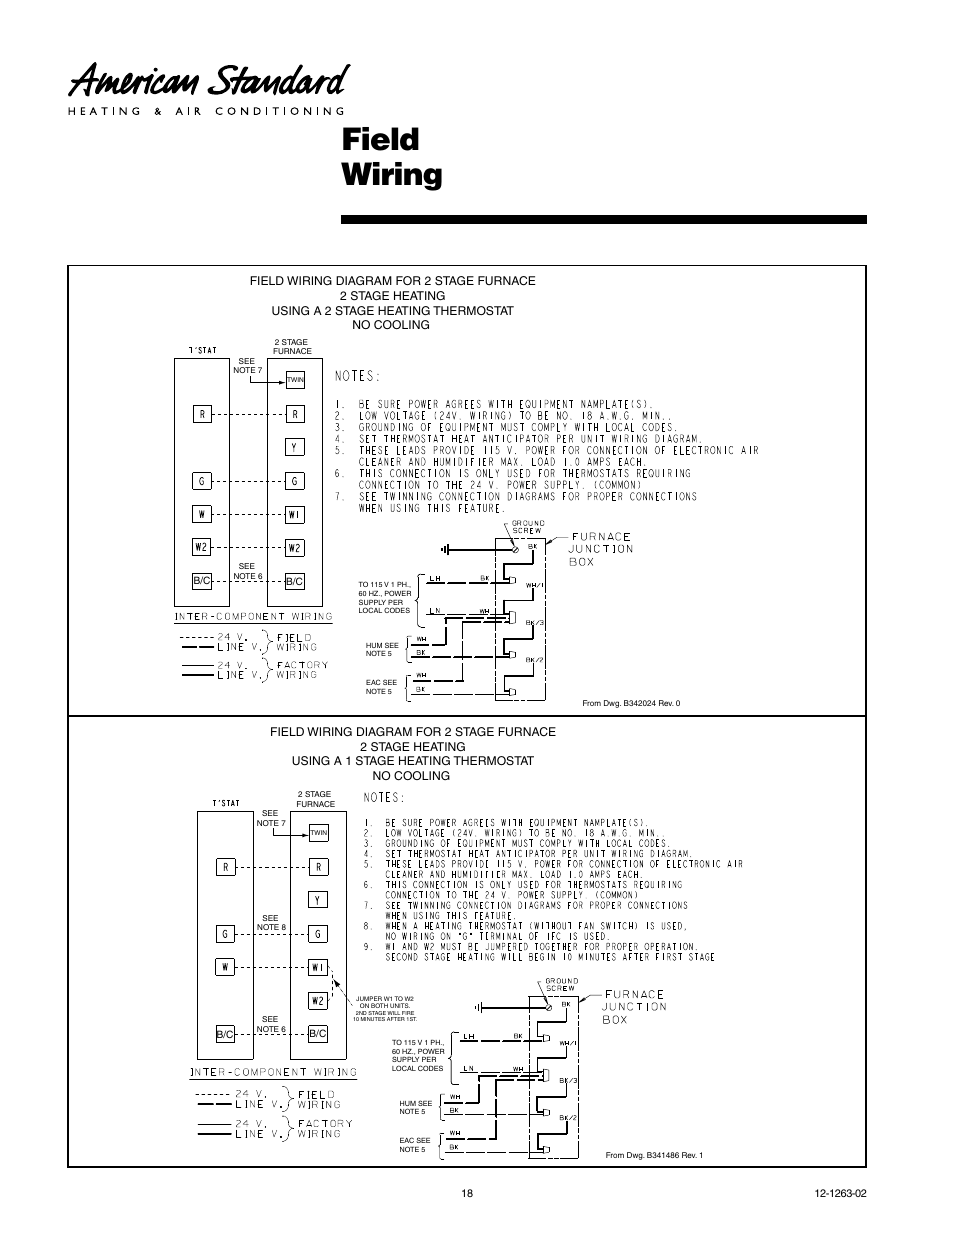 Field wiring | American Standard Freedom 80 User Manual | Page 18 / 24Manuals Directory